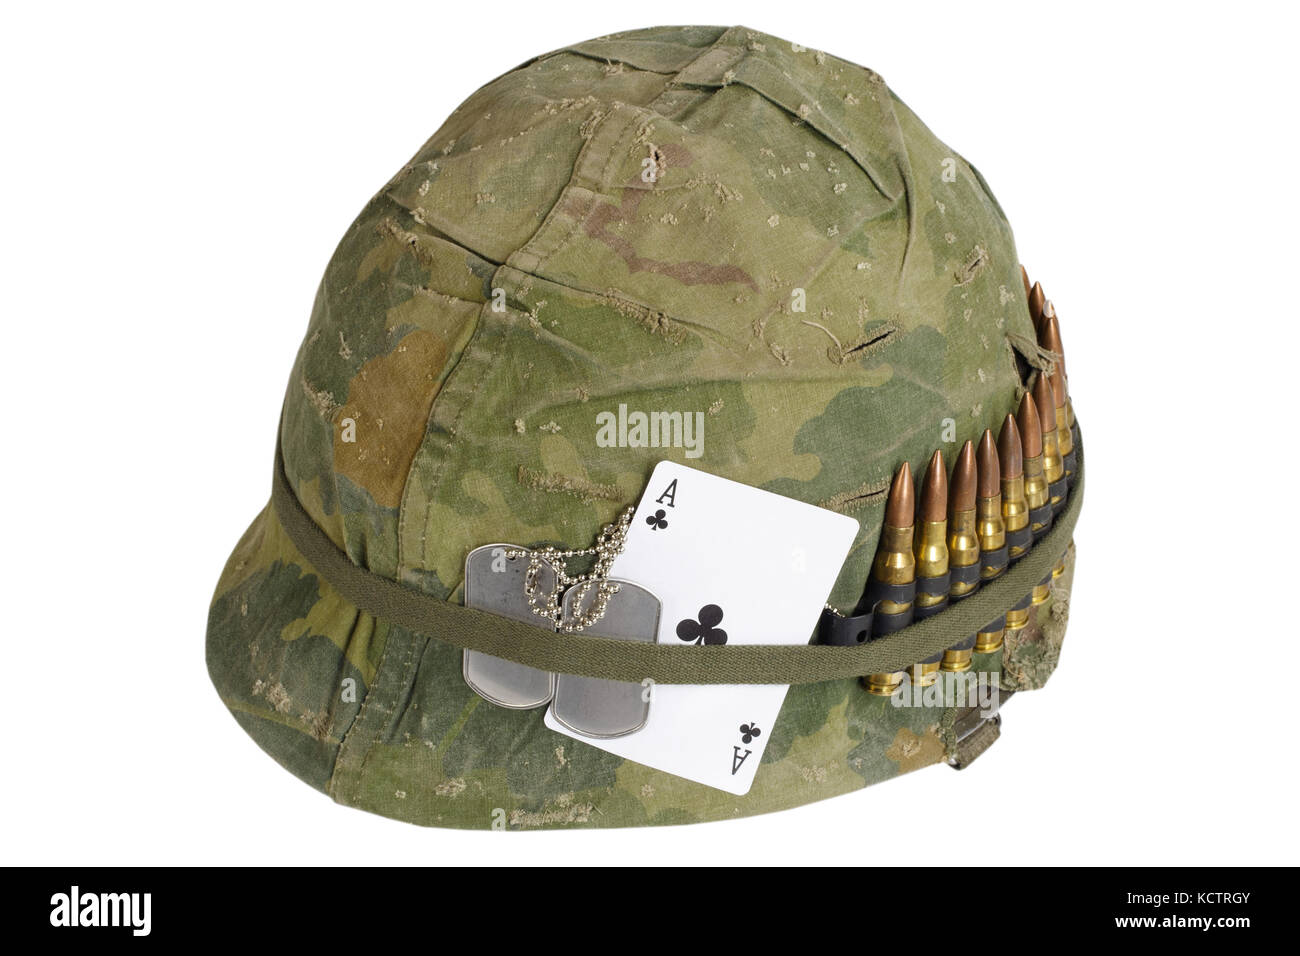 Us Army Helmet Vietnam War Period With Camouflage Cover And Ammo Stock Photo Alamy